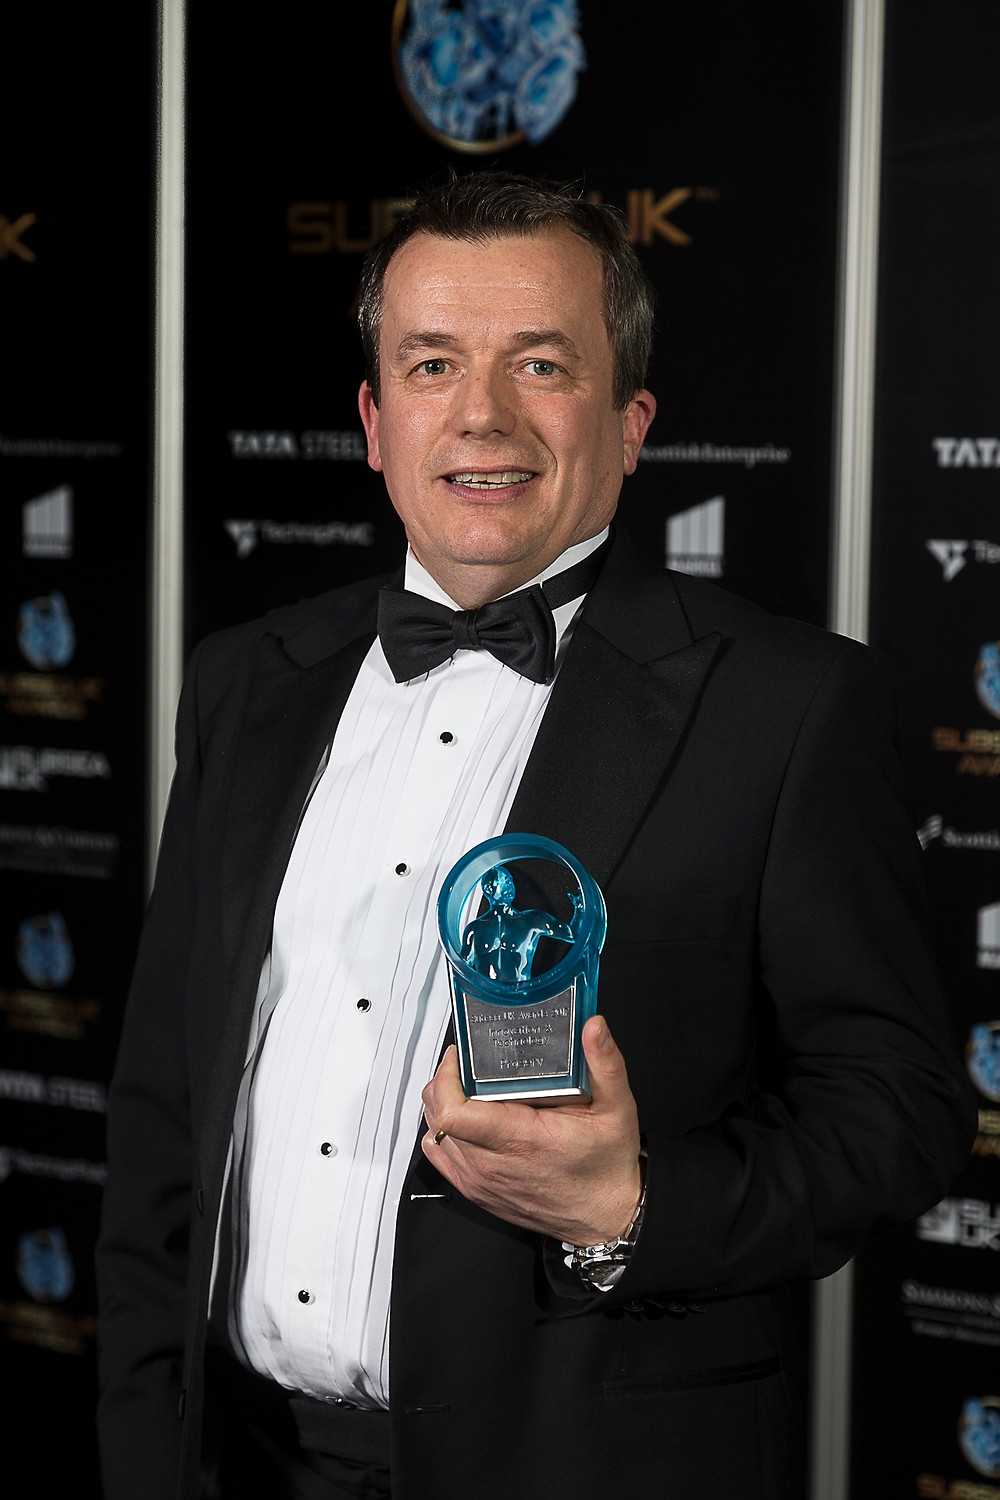 Ian Smith, Proserv's Region President UK and Europe, with the Innovation and Technology award.